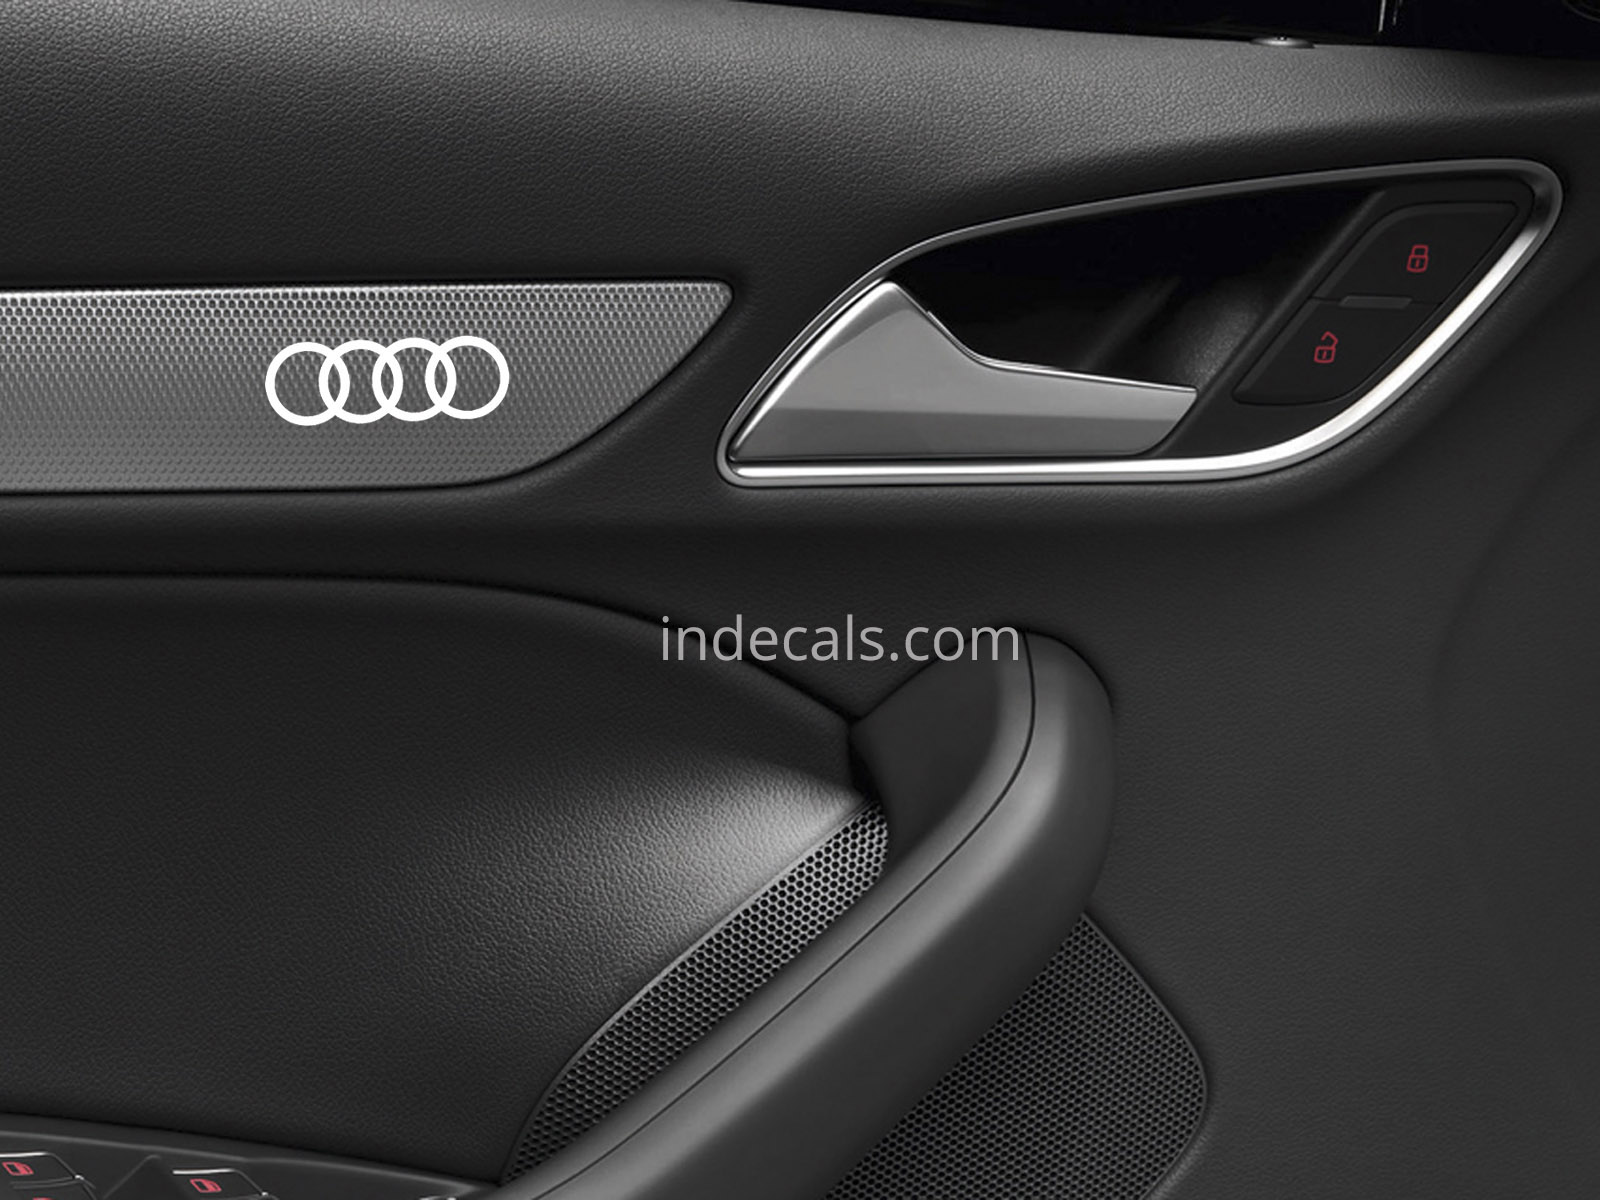 6 x audi rings stickers for door trim - white - indecals